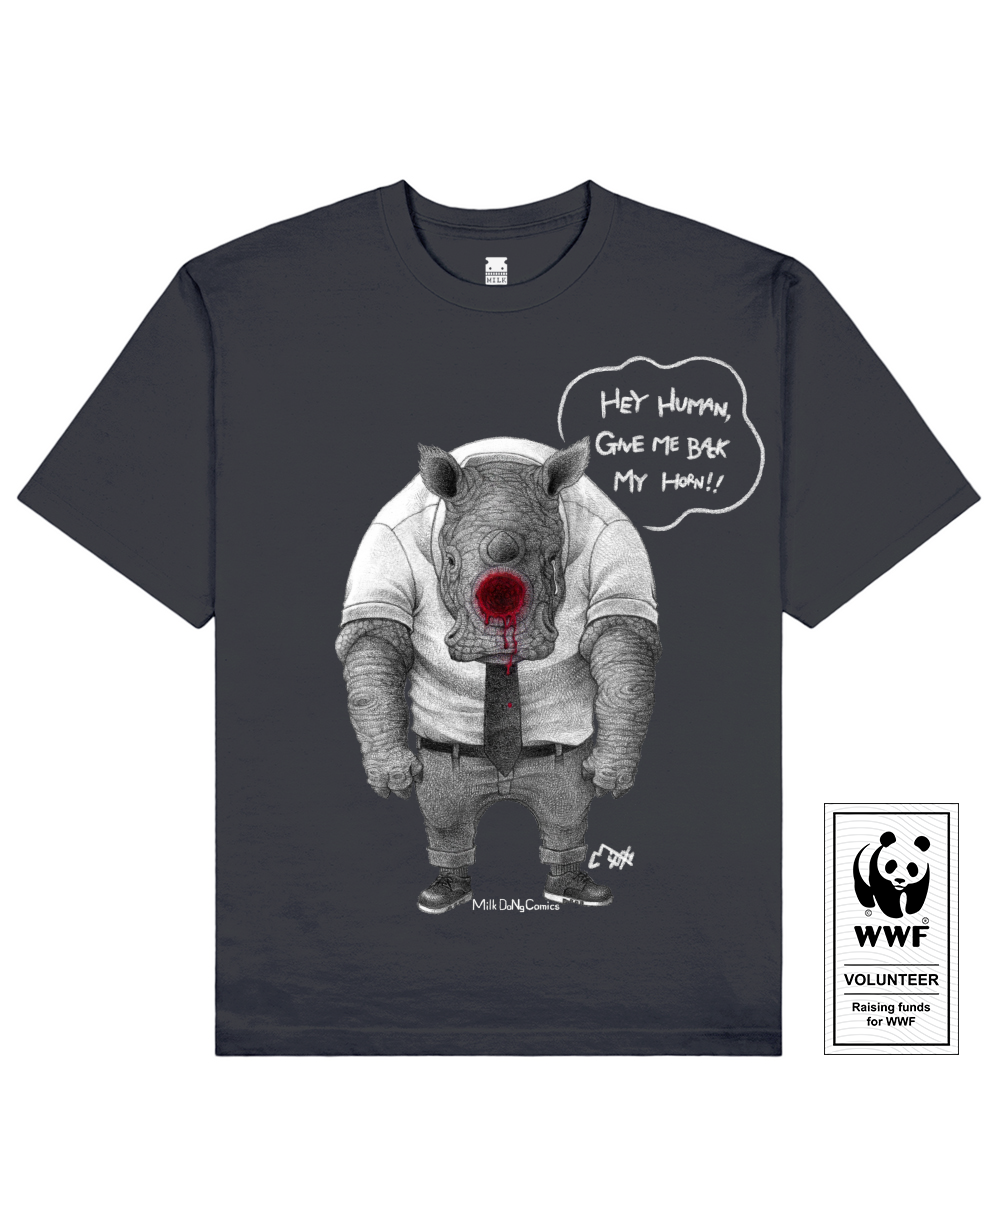 HORNLESS RHINO Printed T-Shirt in Deep Gray - T-Shirts - Milk DoNg Comics - BRANMA